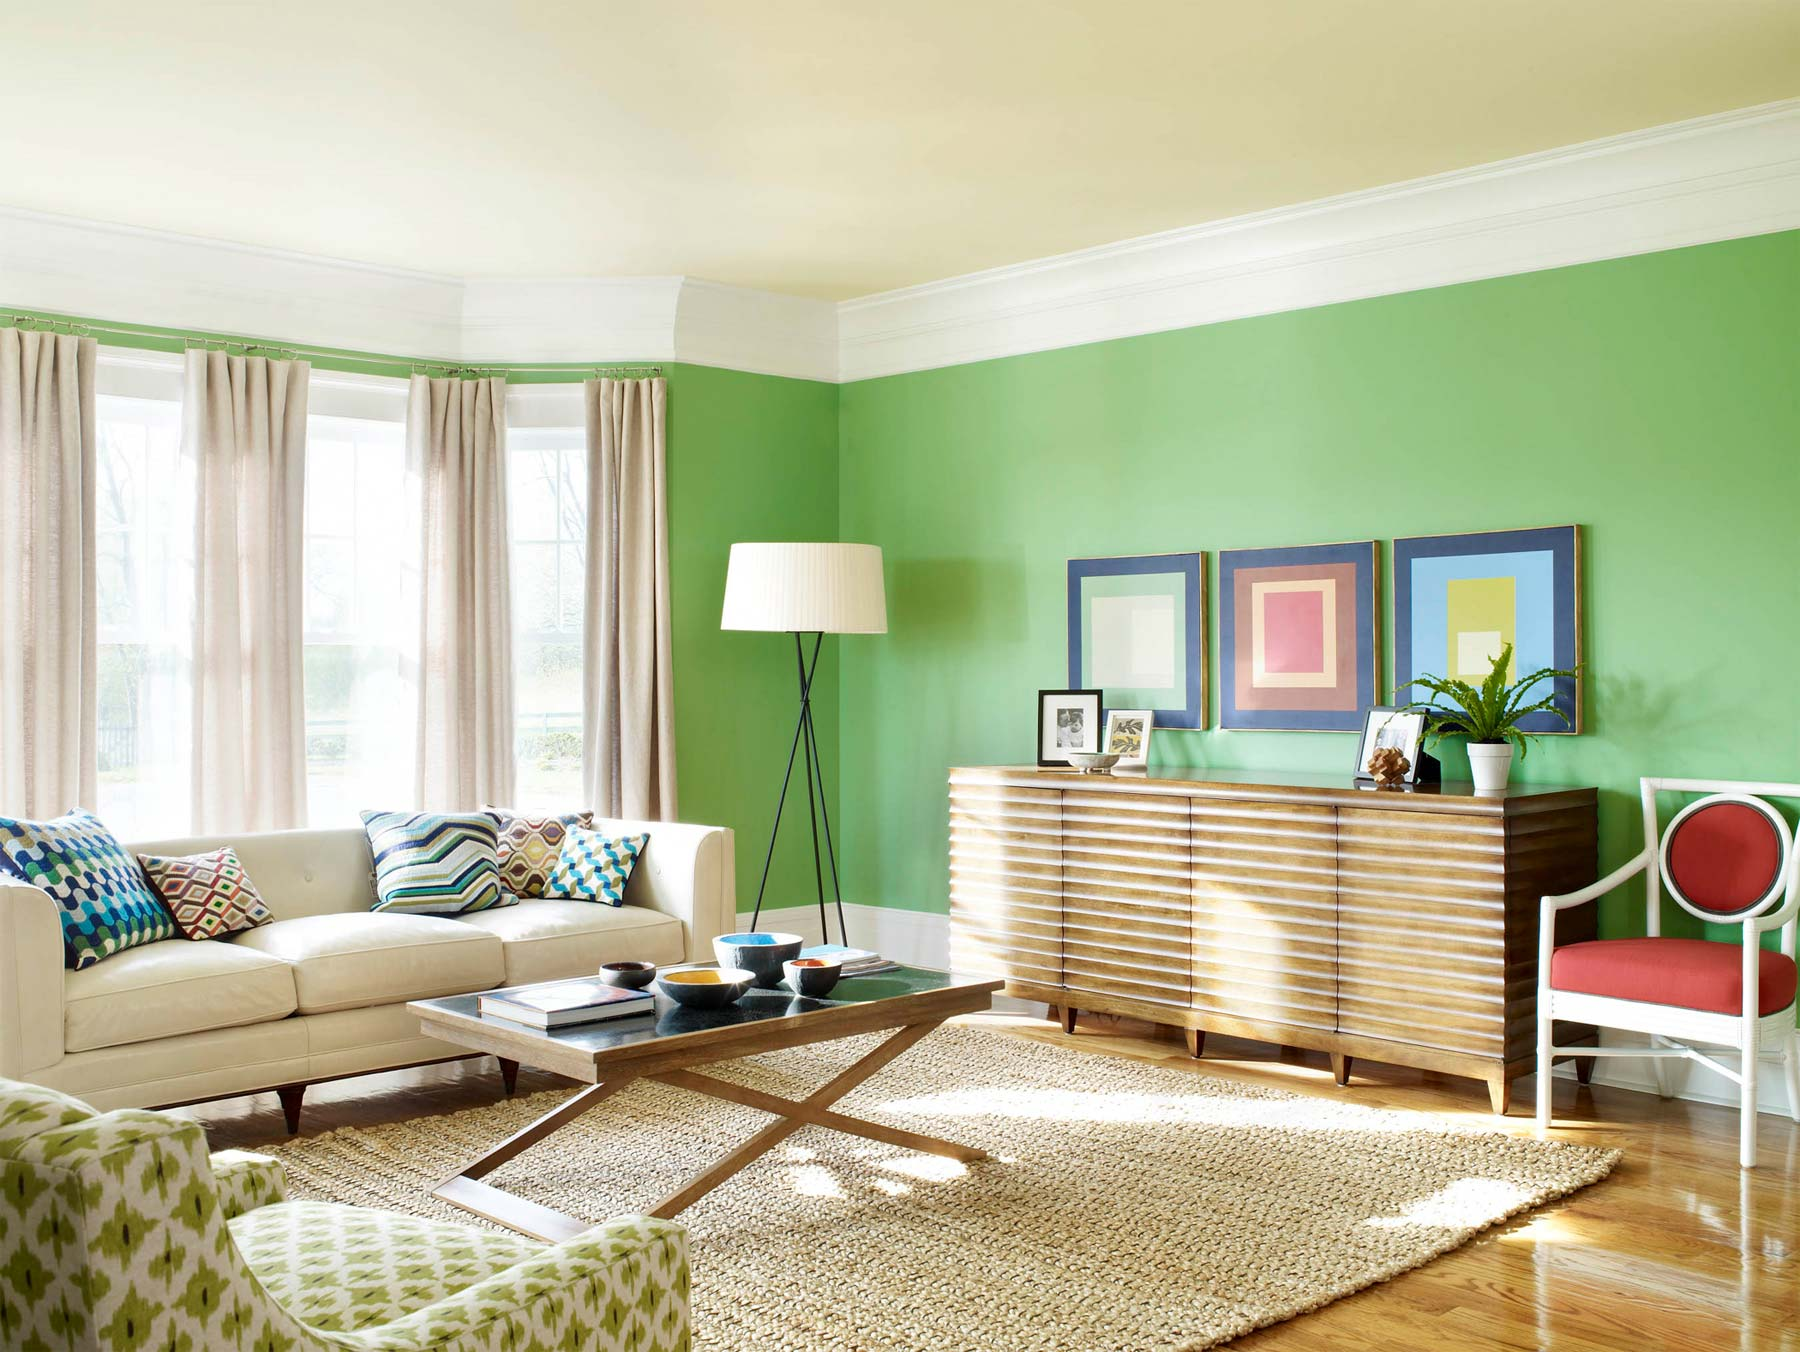 Living room colors paint home design scrappy for Living room colors photos